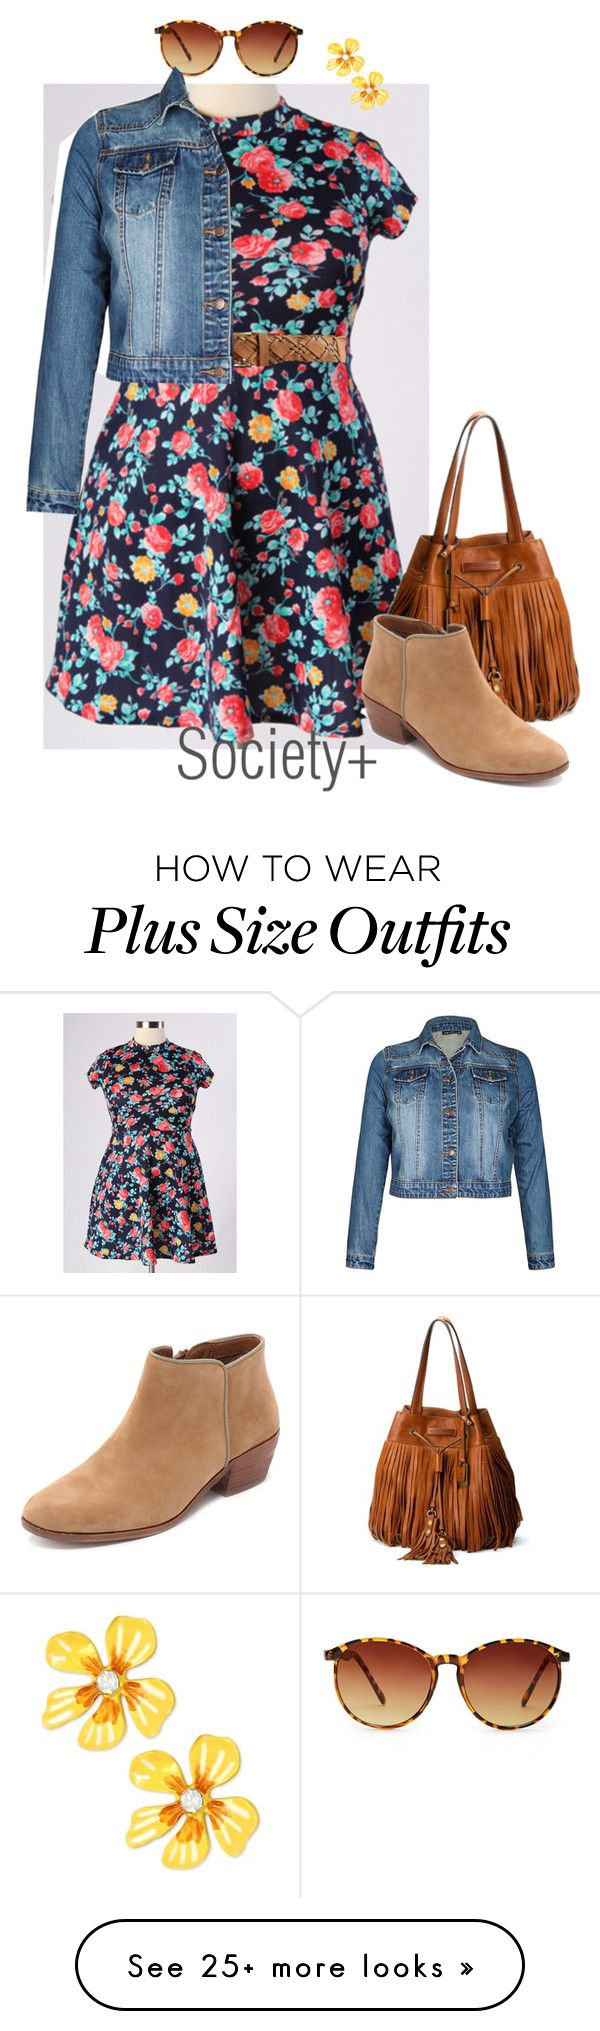 """""""Plus Size Floral Dress - Society+"""" by iamsocietyplus on Polyvore featuring Torrid, Forever 21, Frye, Sam Edelman, Betsey Johnson, plussize, plussizefashion, societyplus and iamsocietyplus"""